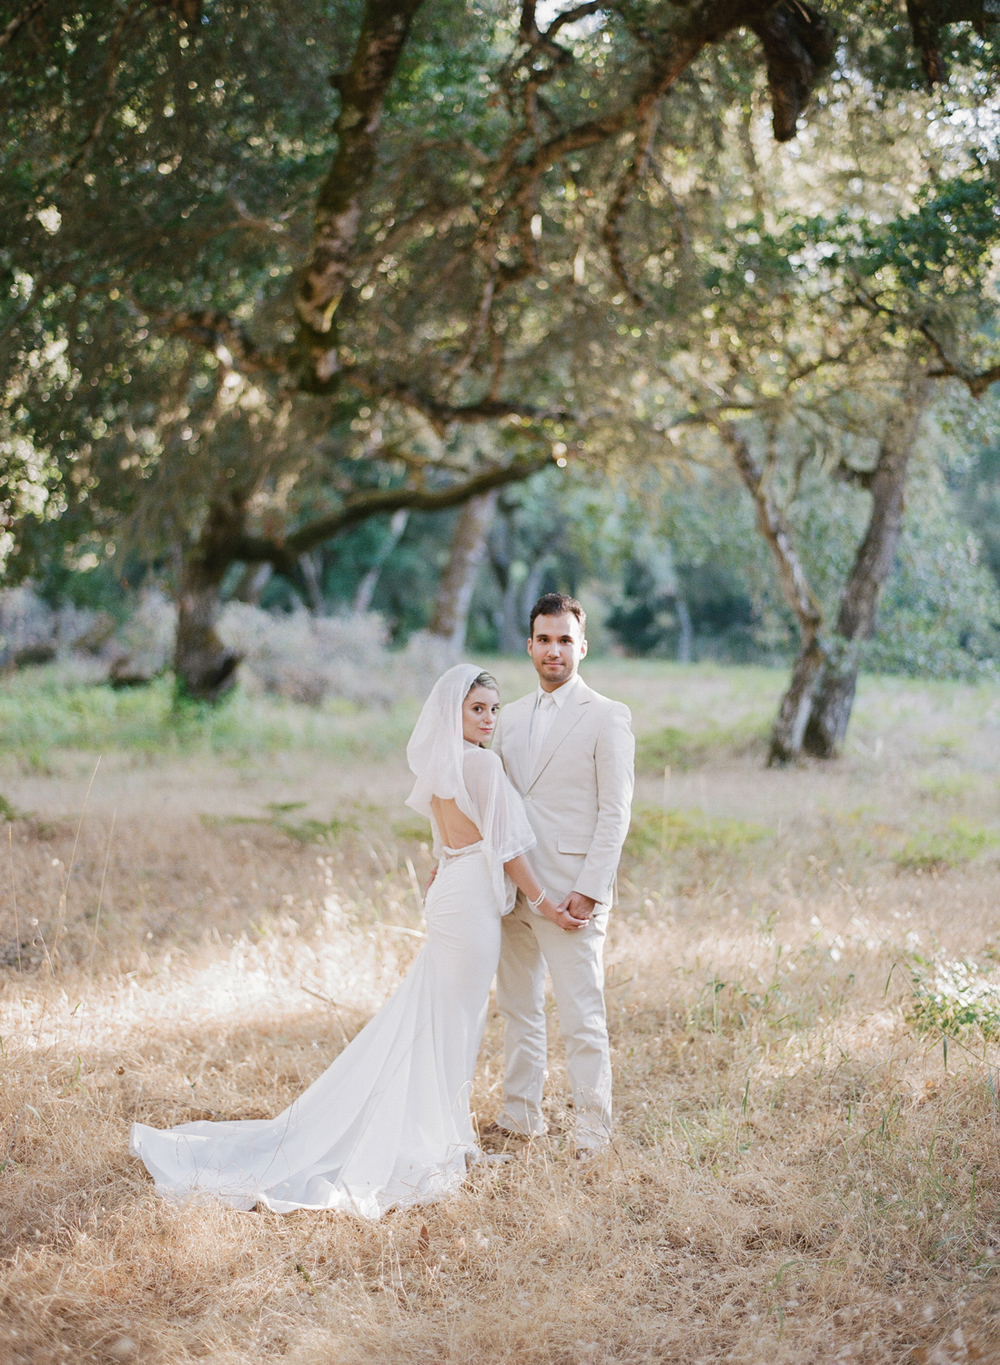 The bride and groom stand among old oaks in Santa Lucia; photo by Sylvie Gil